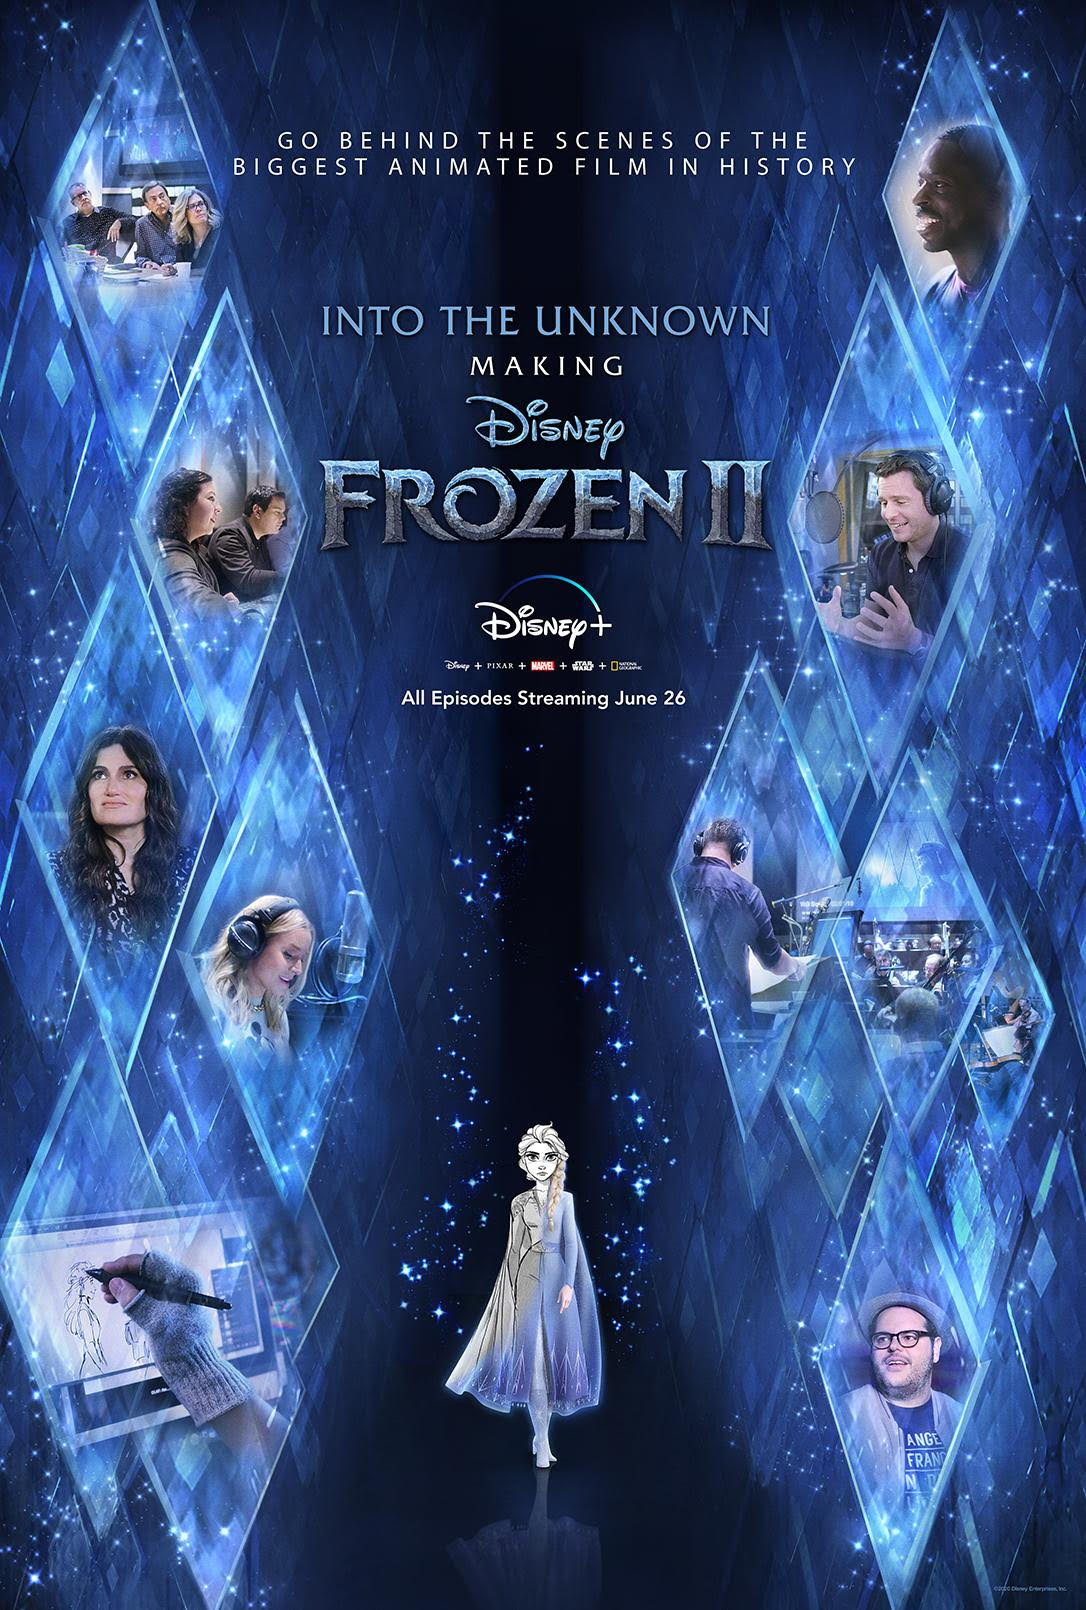 Into The Unknown: Making Frozen 2 on Disney+